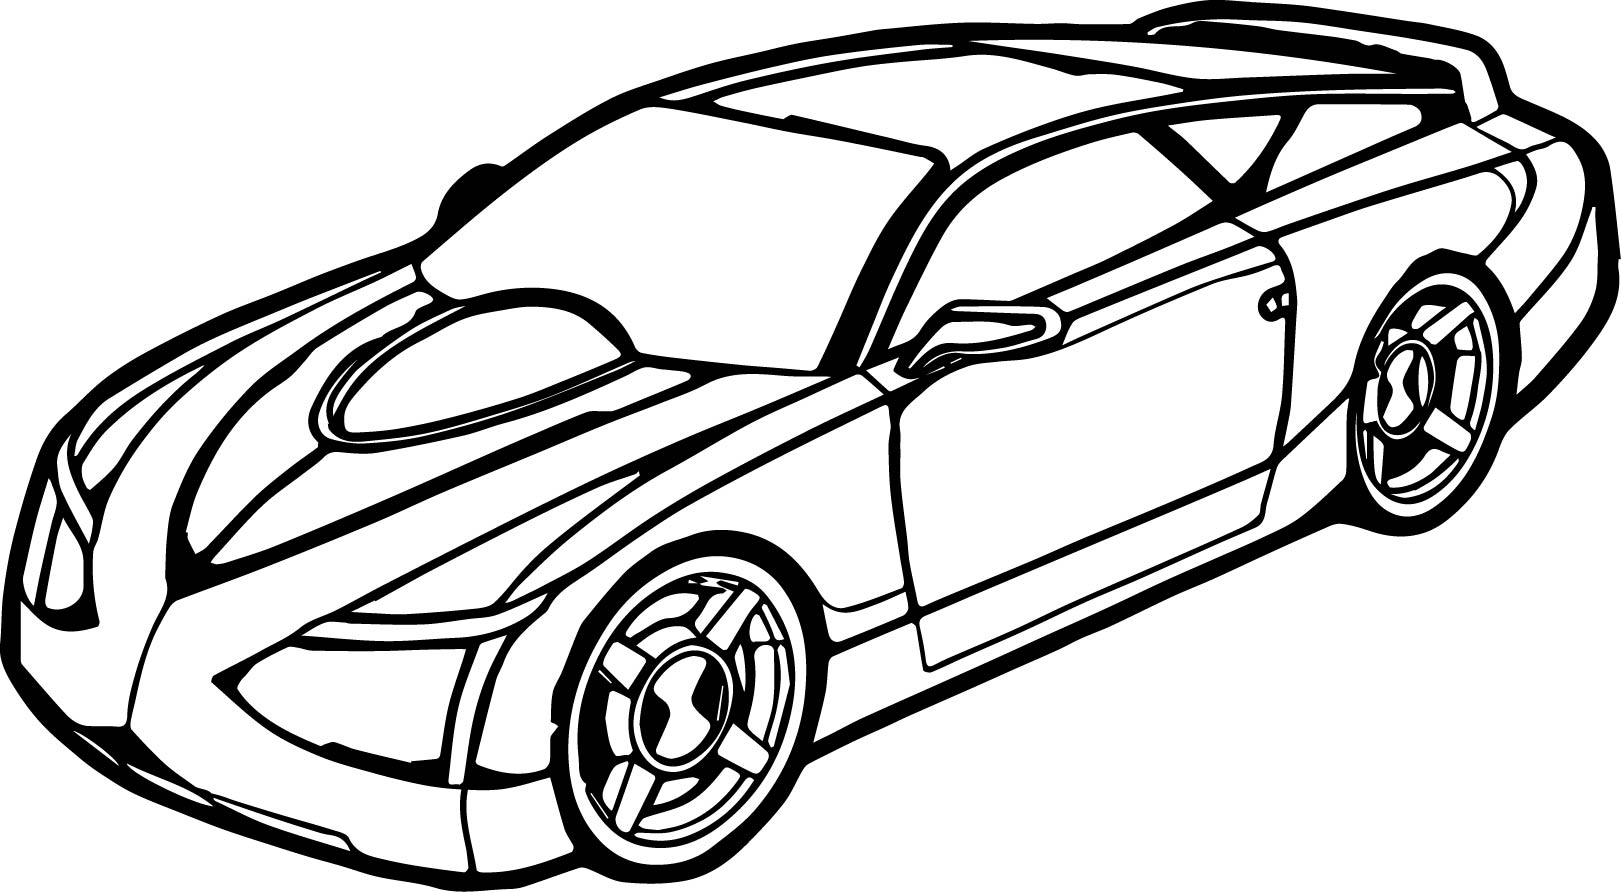 DX Mark 10 Ben Ten Car Coloring Page | Wecoloringpage.com